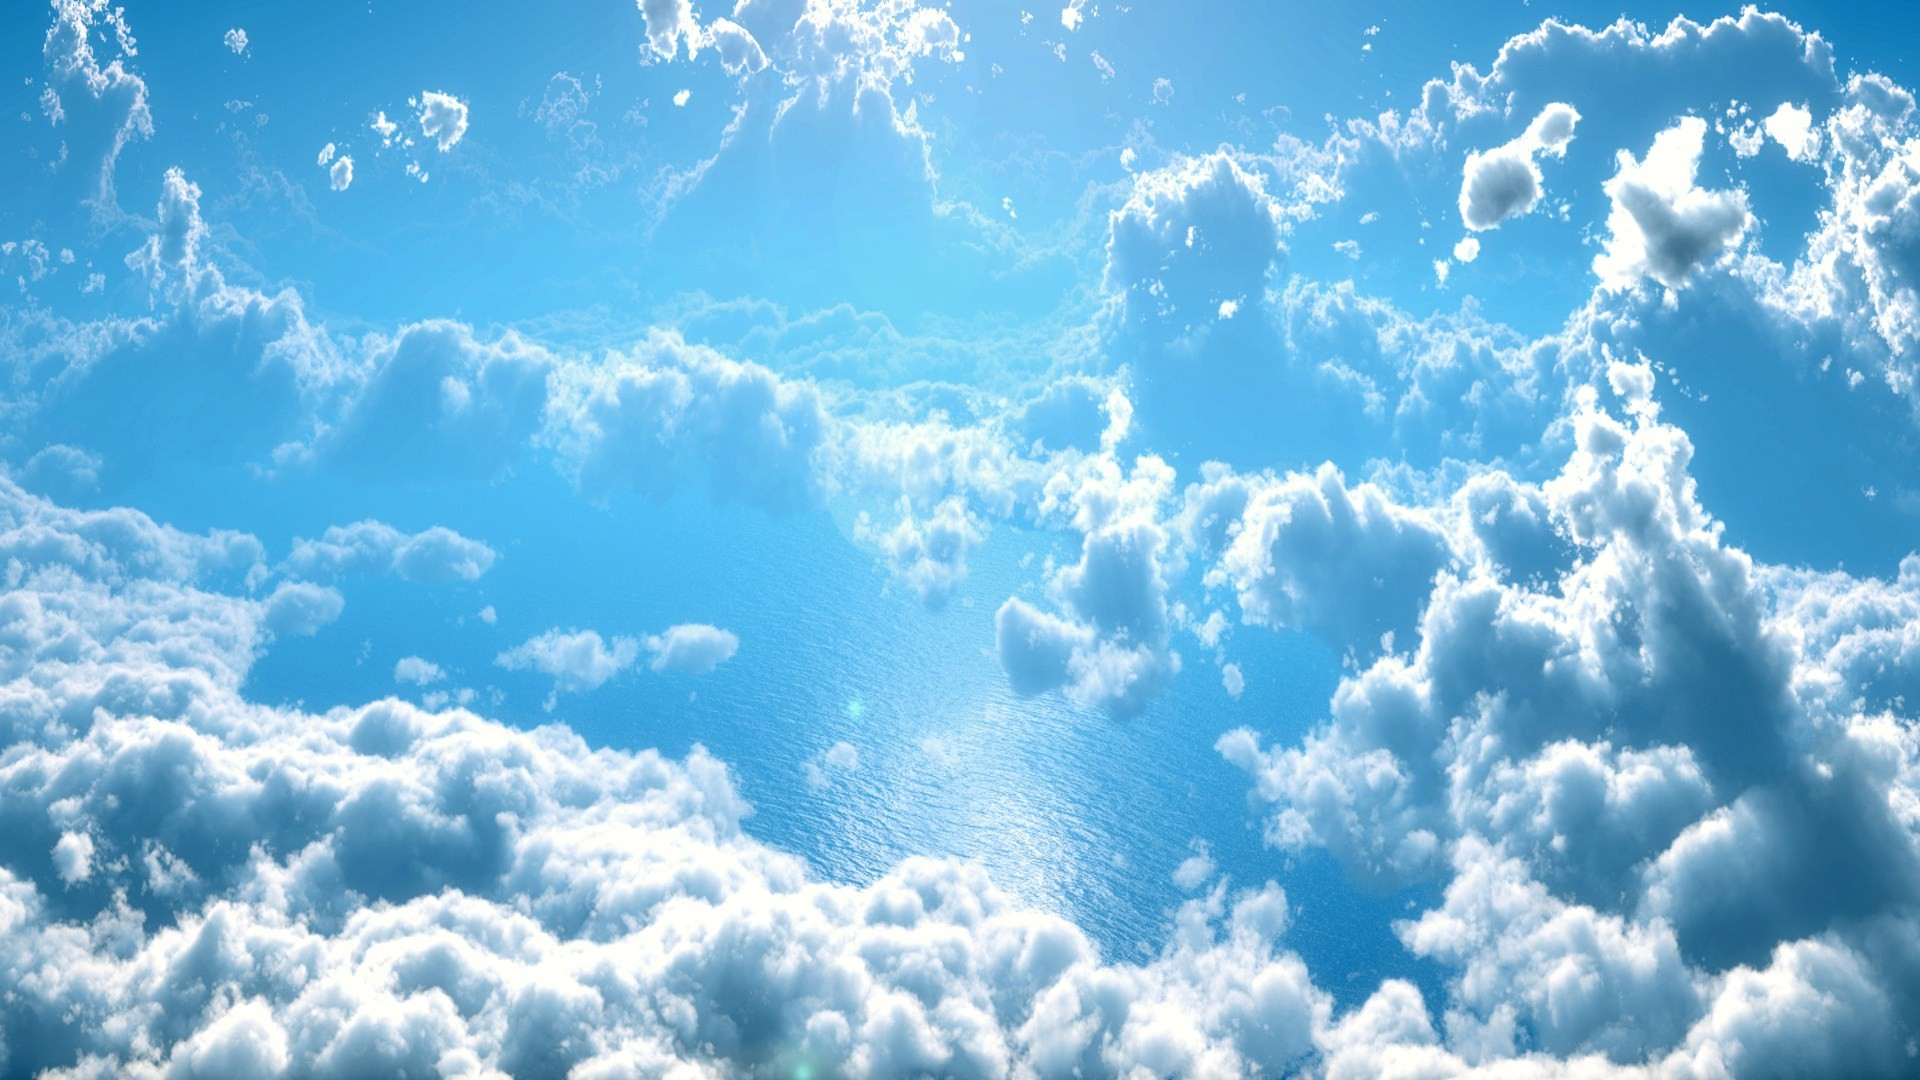 Heaven Images Backgrounds ·① WallpaperTag